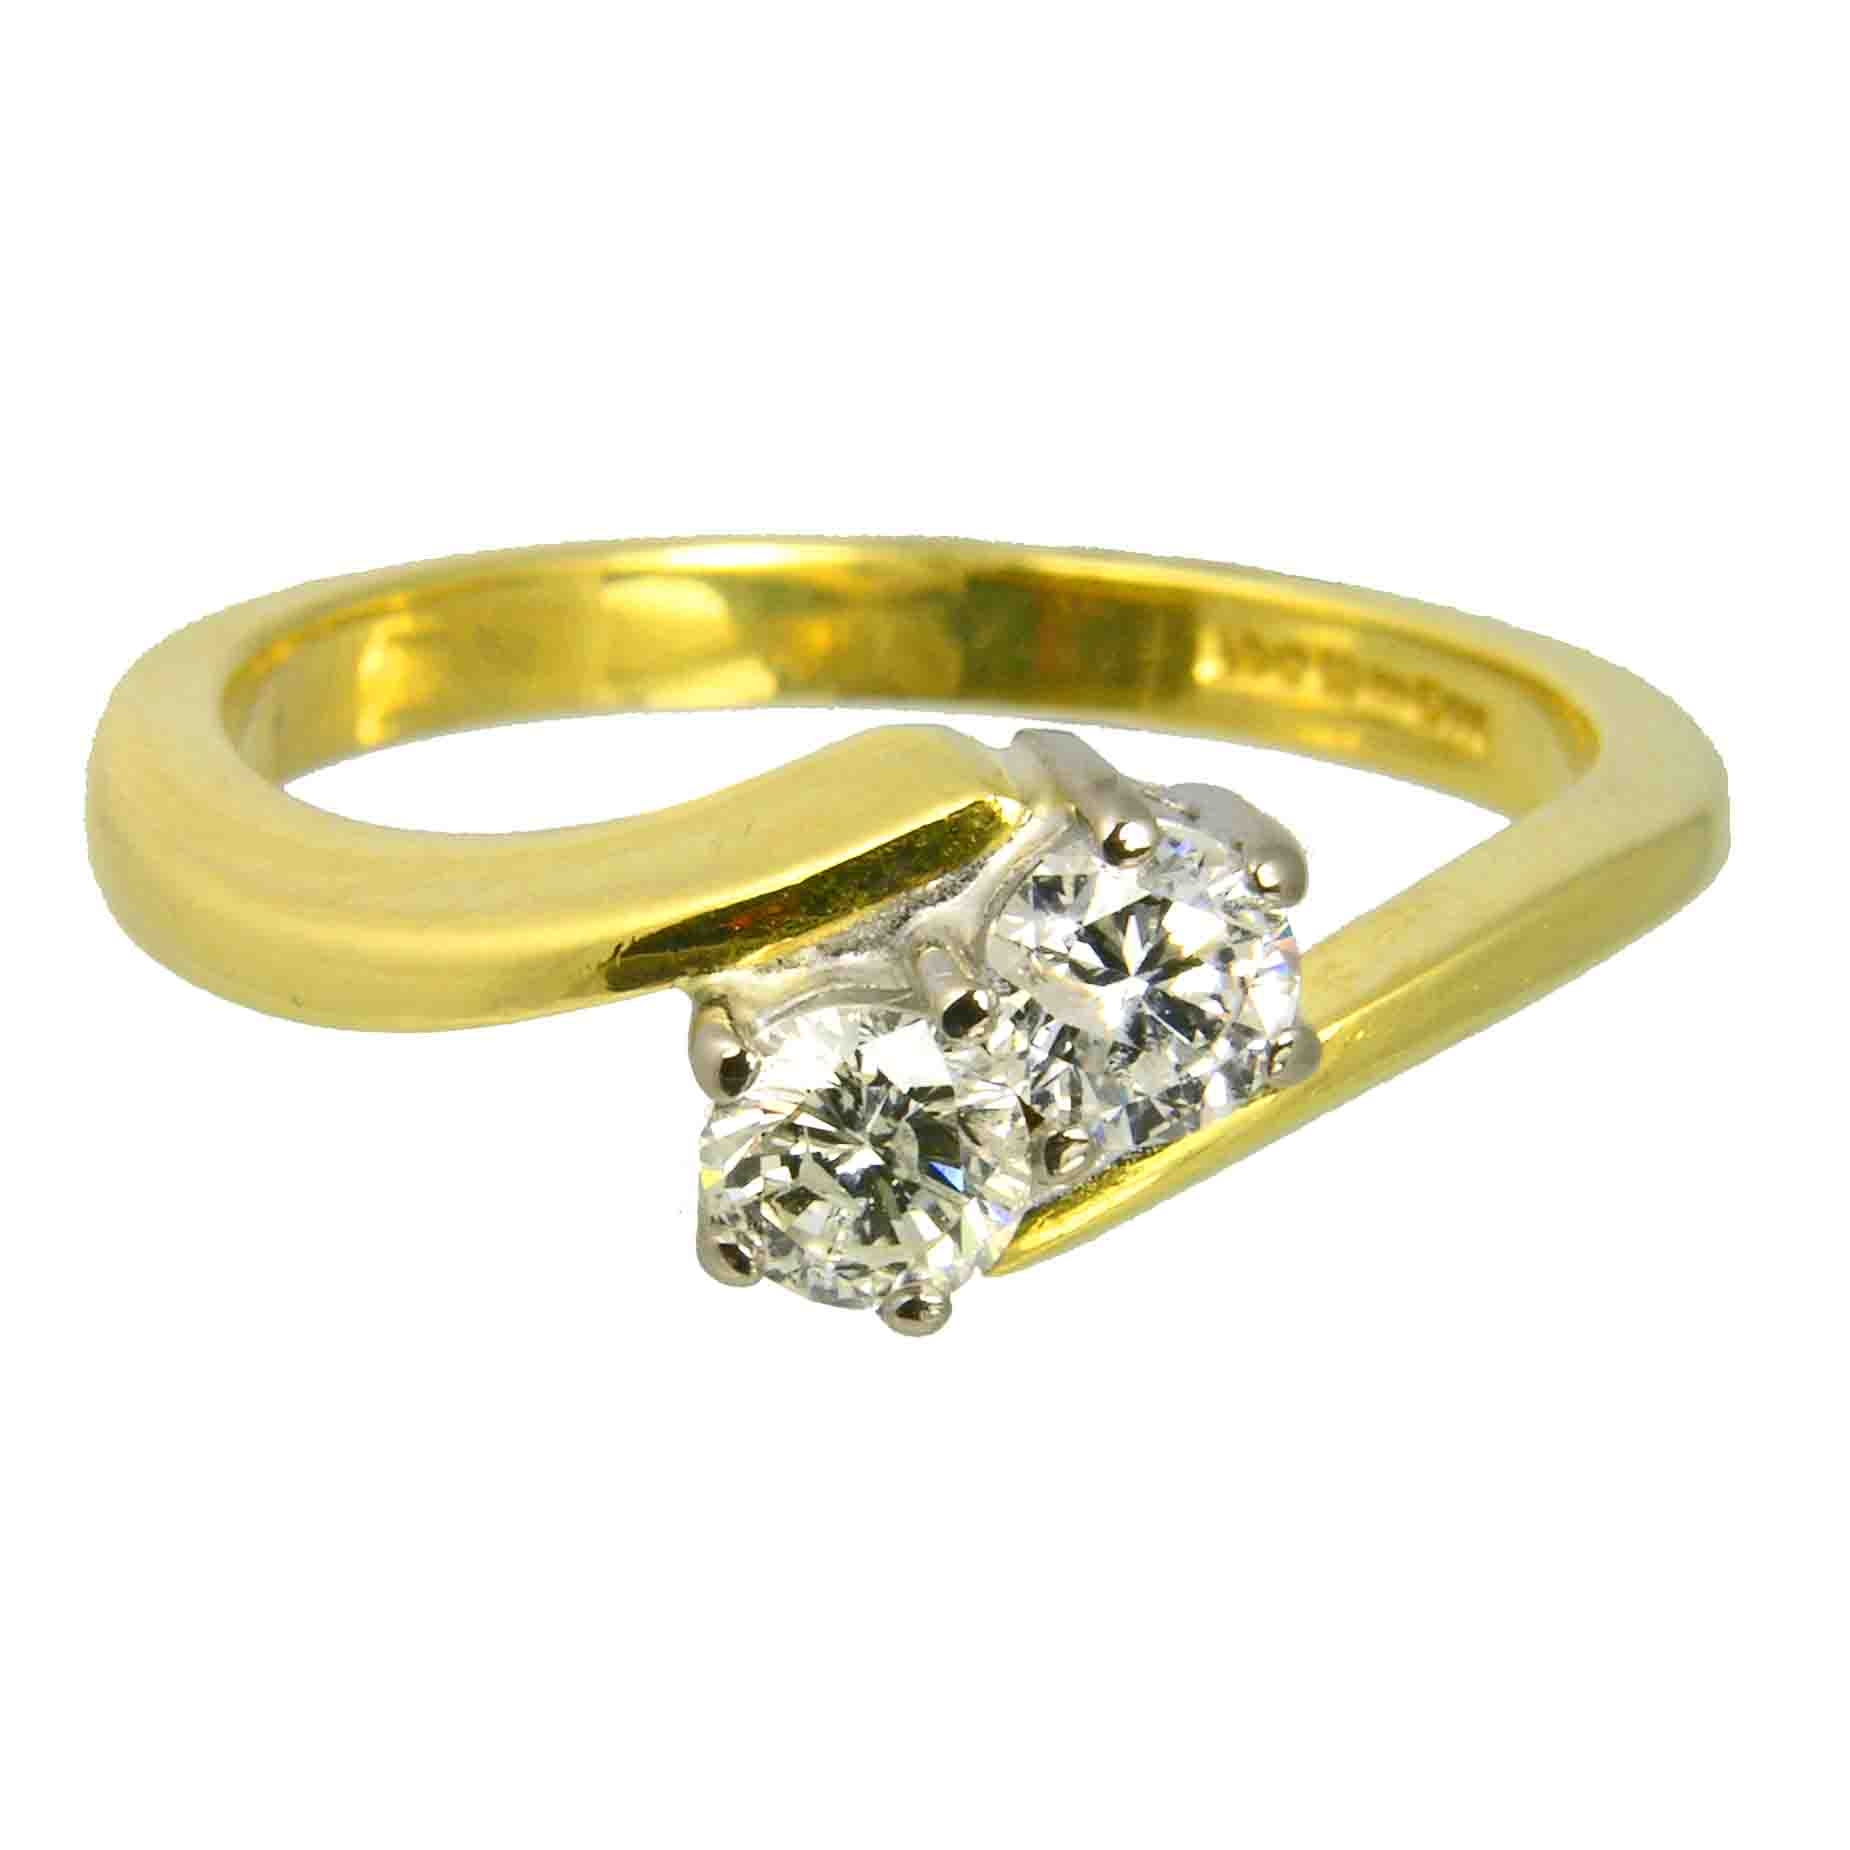 second hand Pre loved 18ct yellow gold 2 stone diamond toi et moi ring from AA Thornton Kettering Northampton